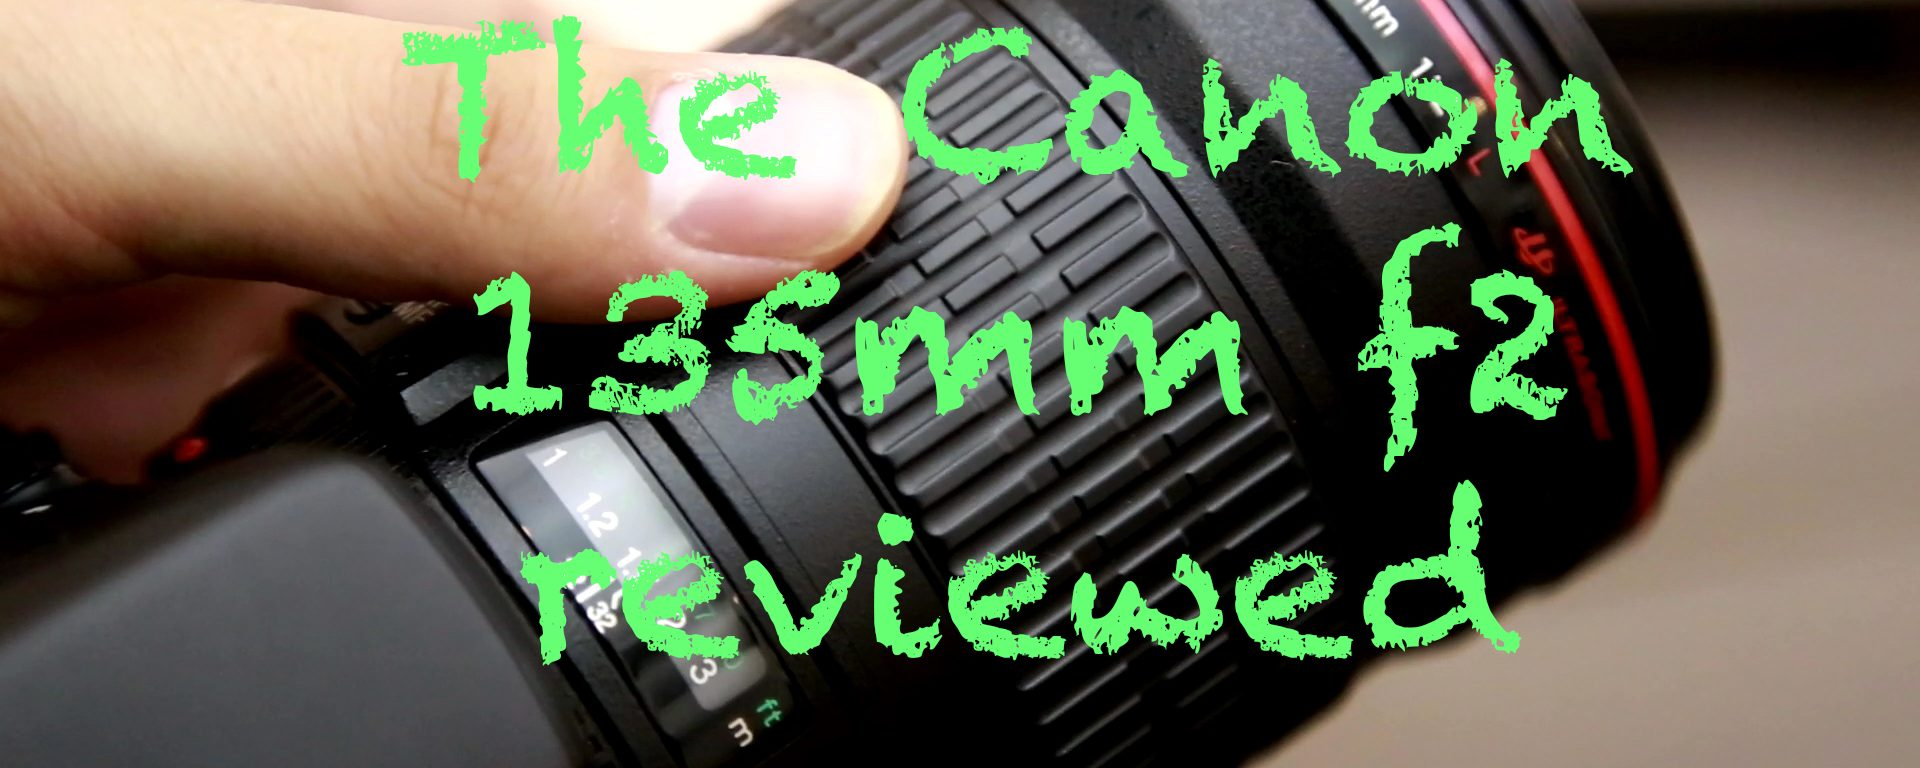 135mm lens review